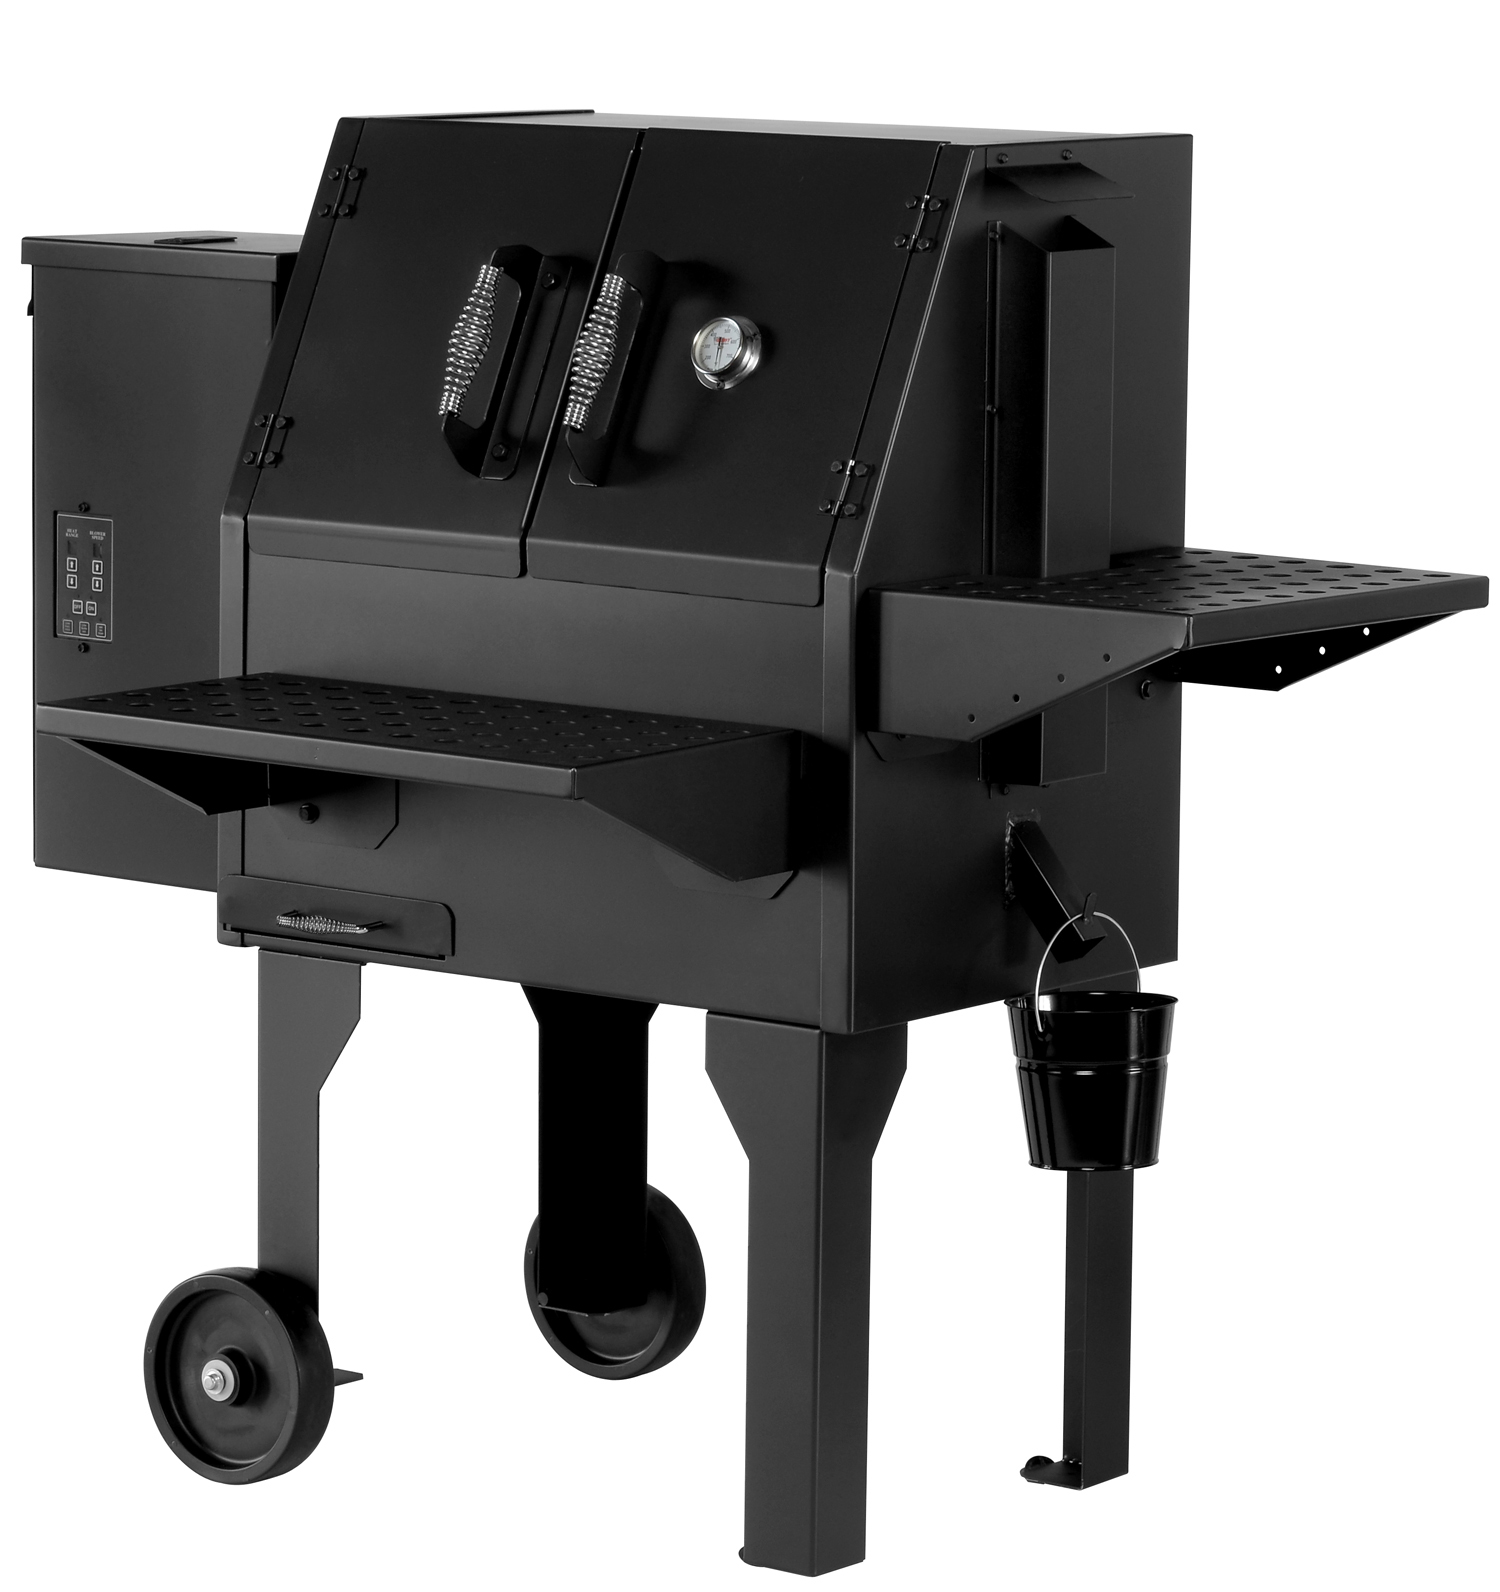 englander wood pellet grill and smoker price